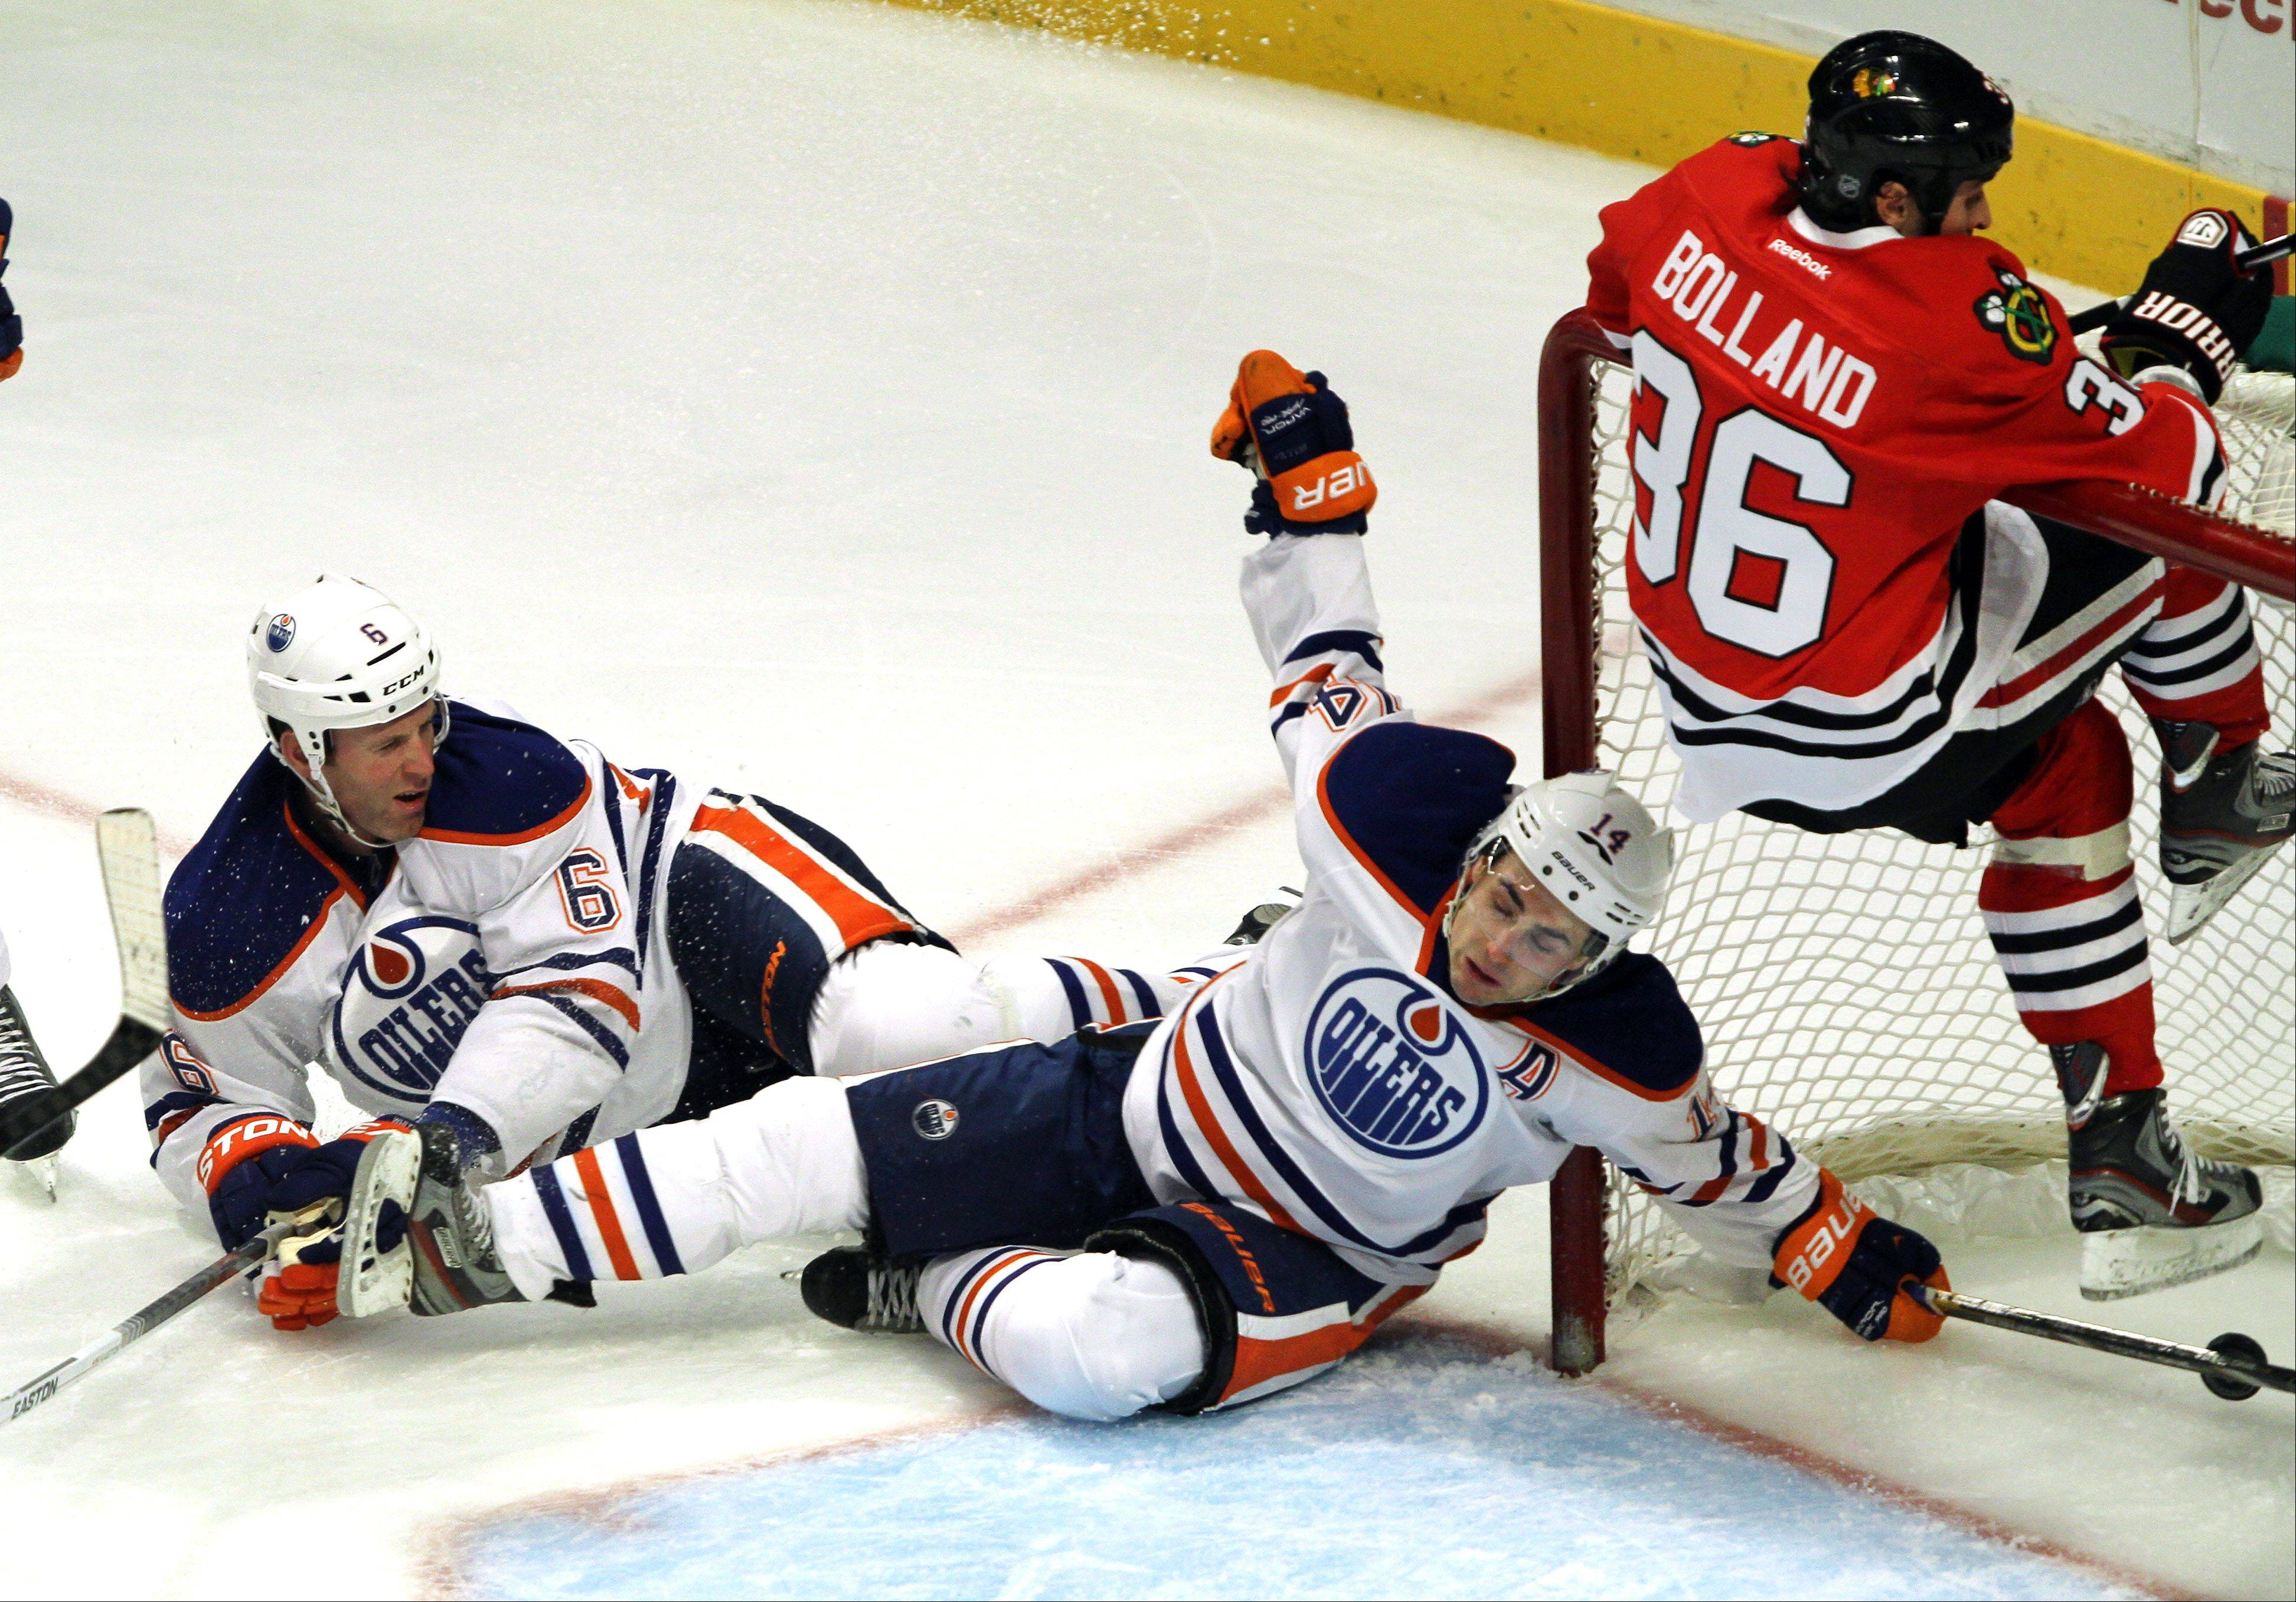 Blackhawks center Dave Bolland runs into the net as Patrick Kane scores in Sunday's second period at United Center. It was a wild goal in a wild game that saw the Edmonton Oilers hold on for a 6-5 victory.